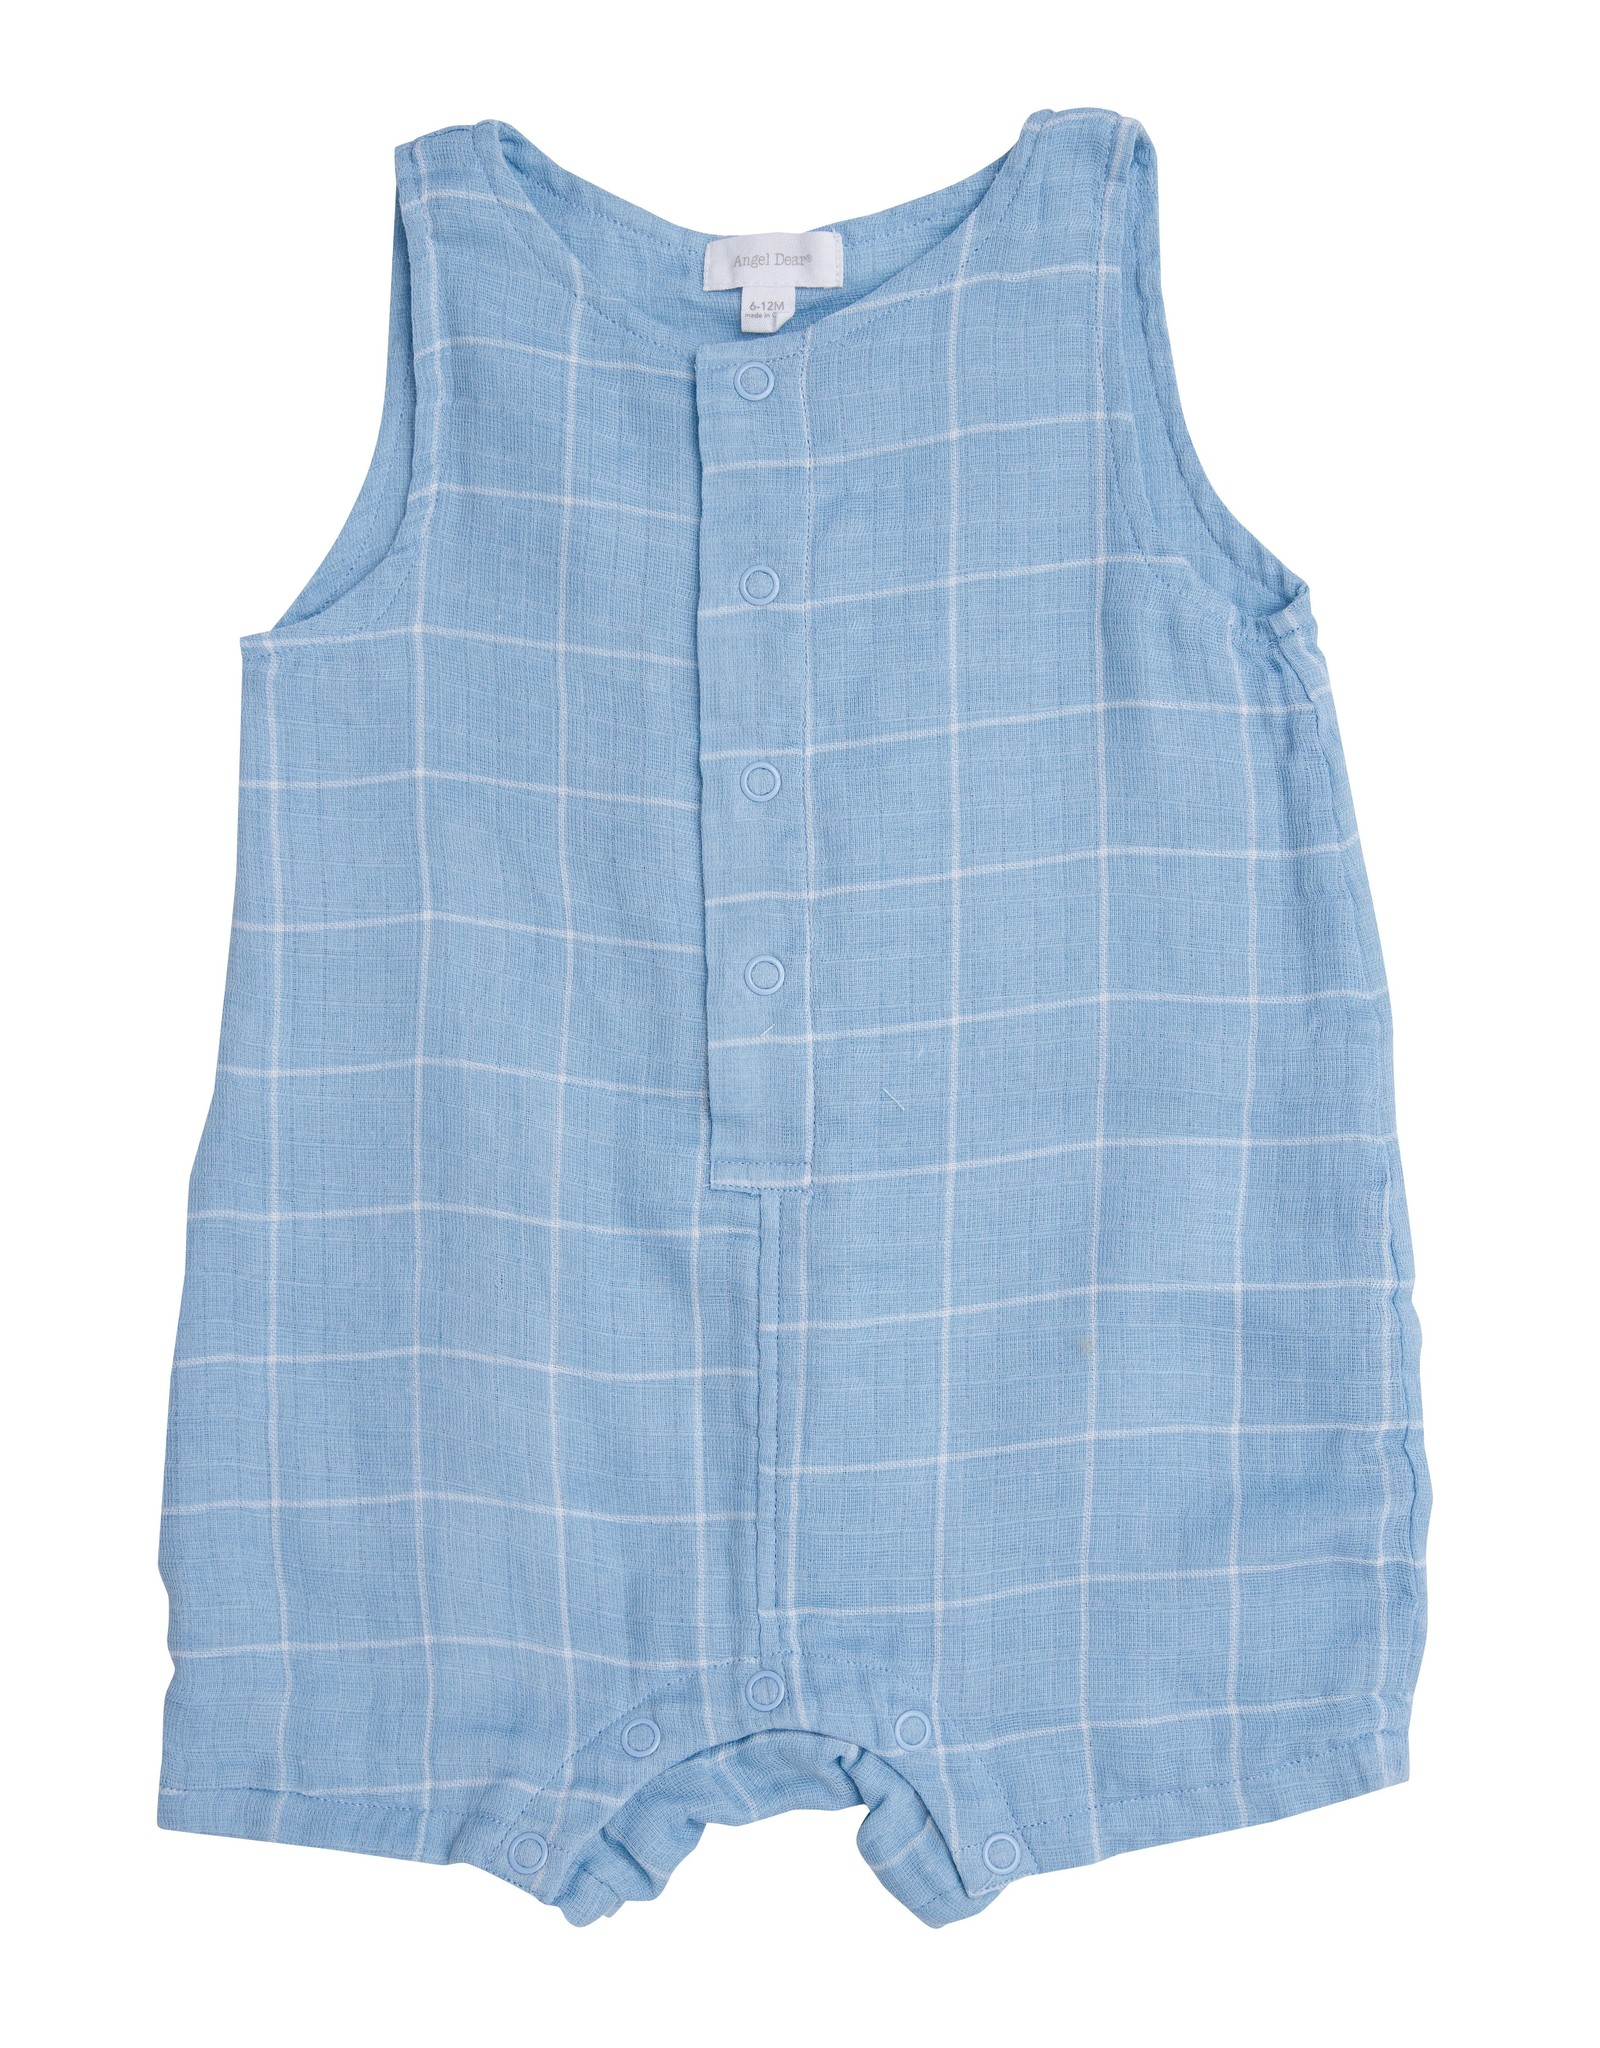 Angel Dear blue grid shortie romper